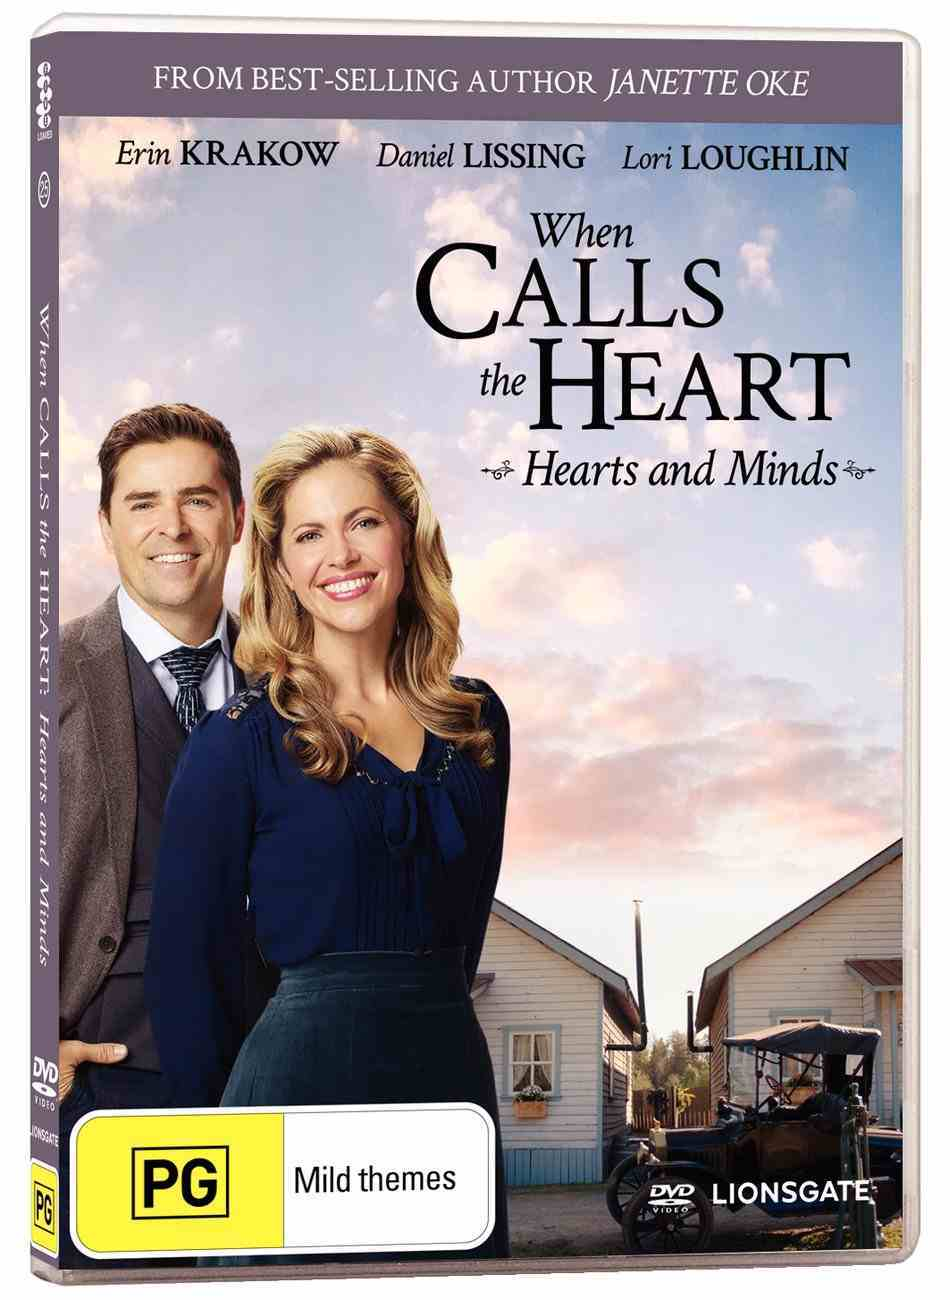 When Calls the Heart #25: Hearts and Minds DVD